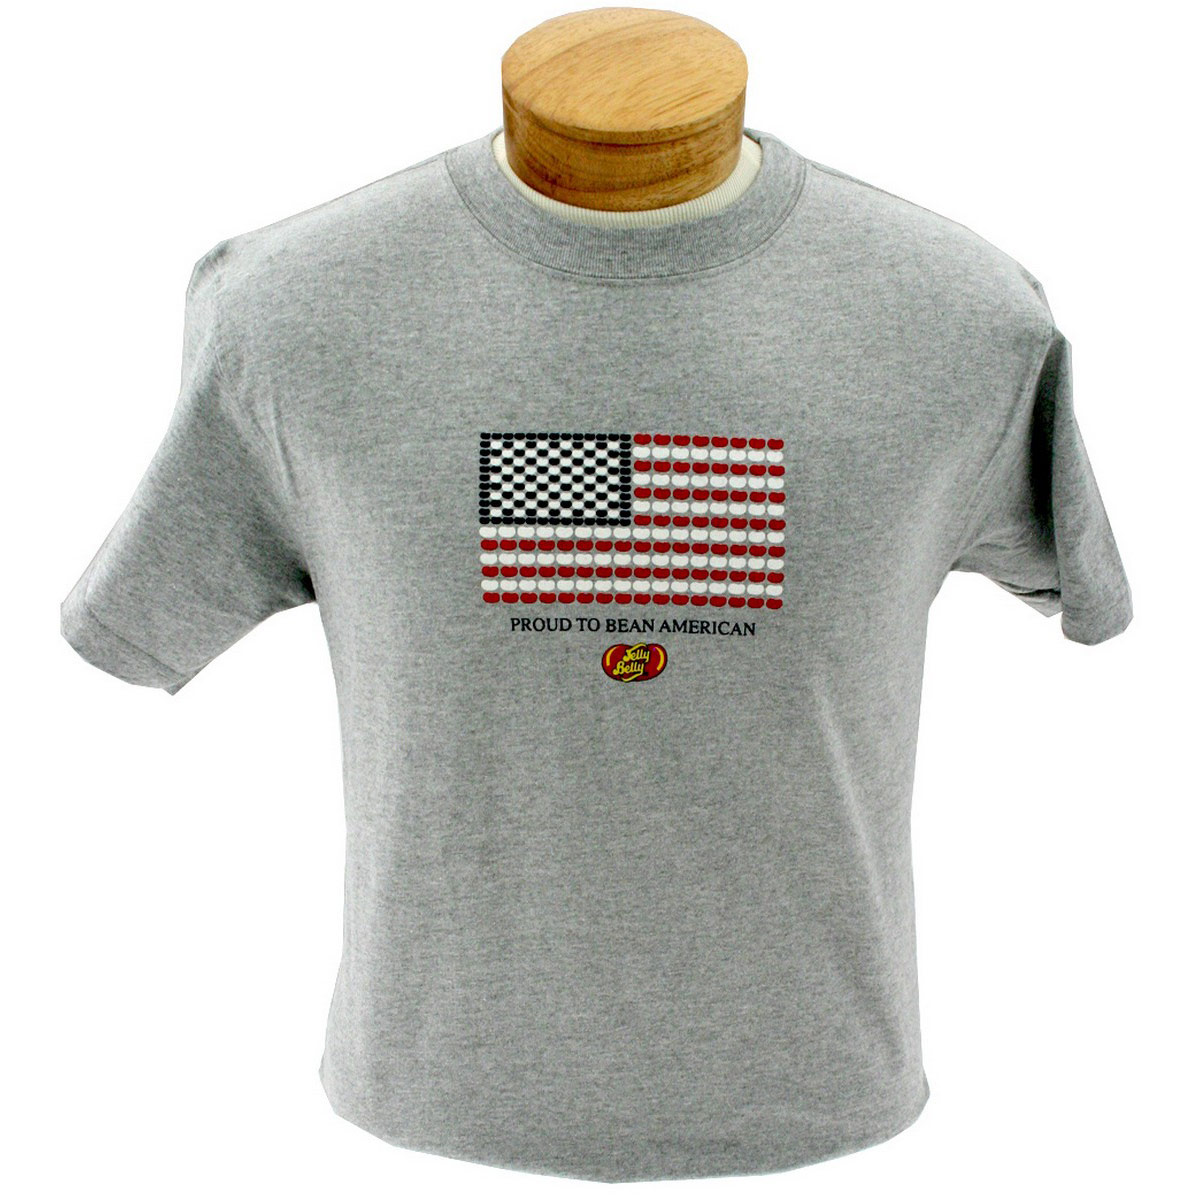 Proud to Bean American T-shirt - Medium